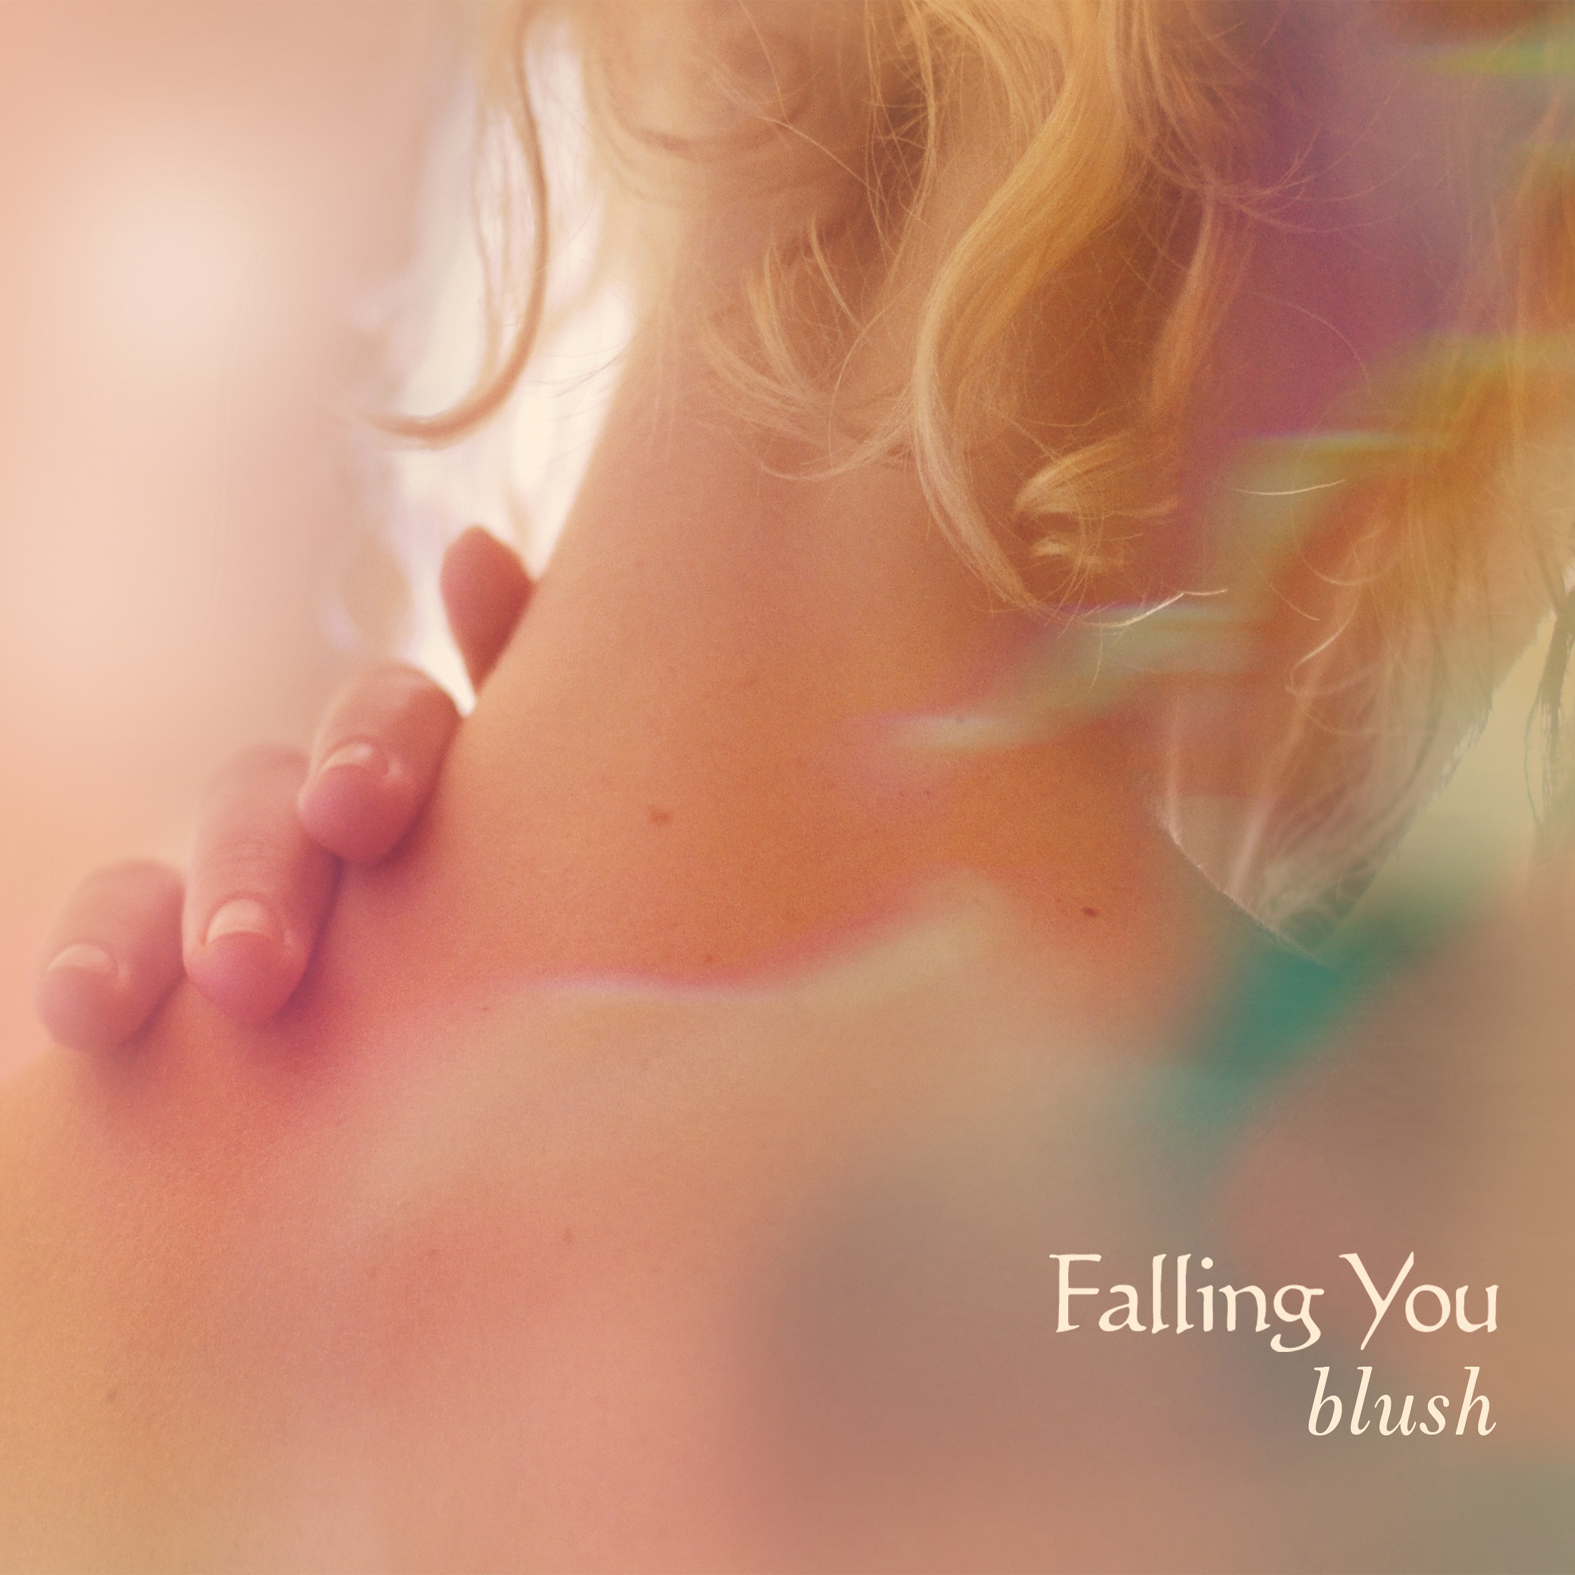 Blush By Falling You